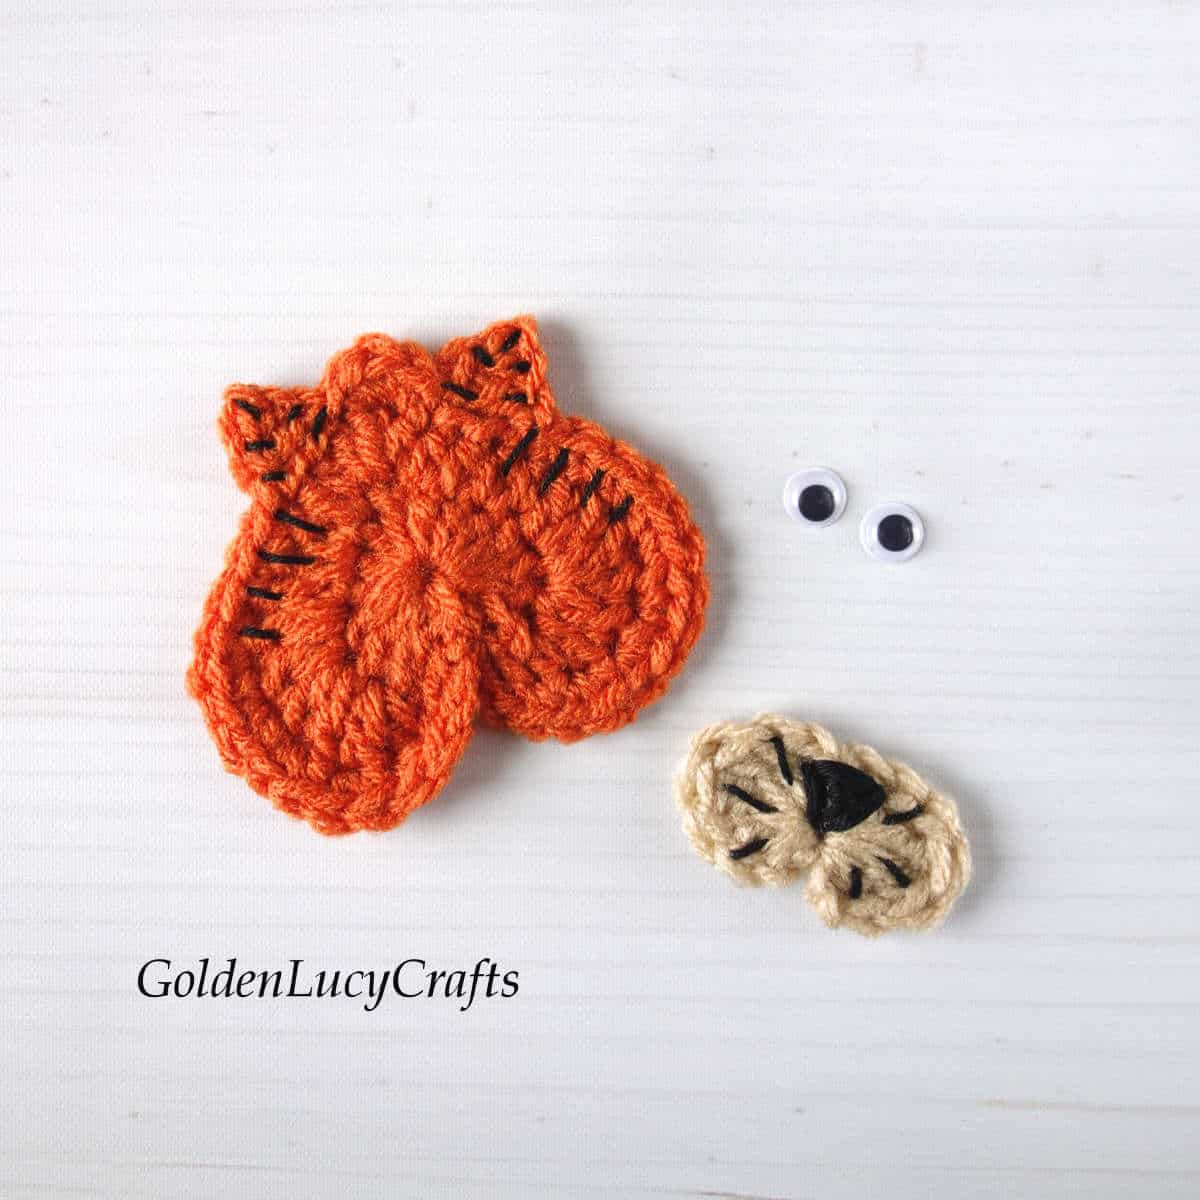 Parts of crocheted tiger applique - a head and a snout.